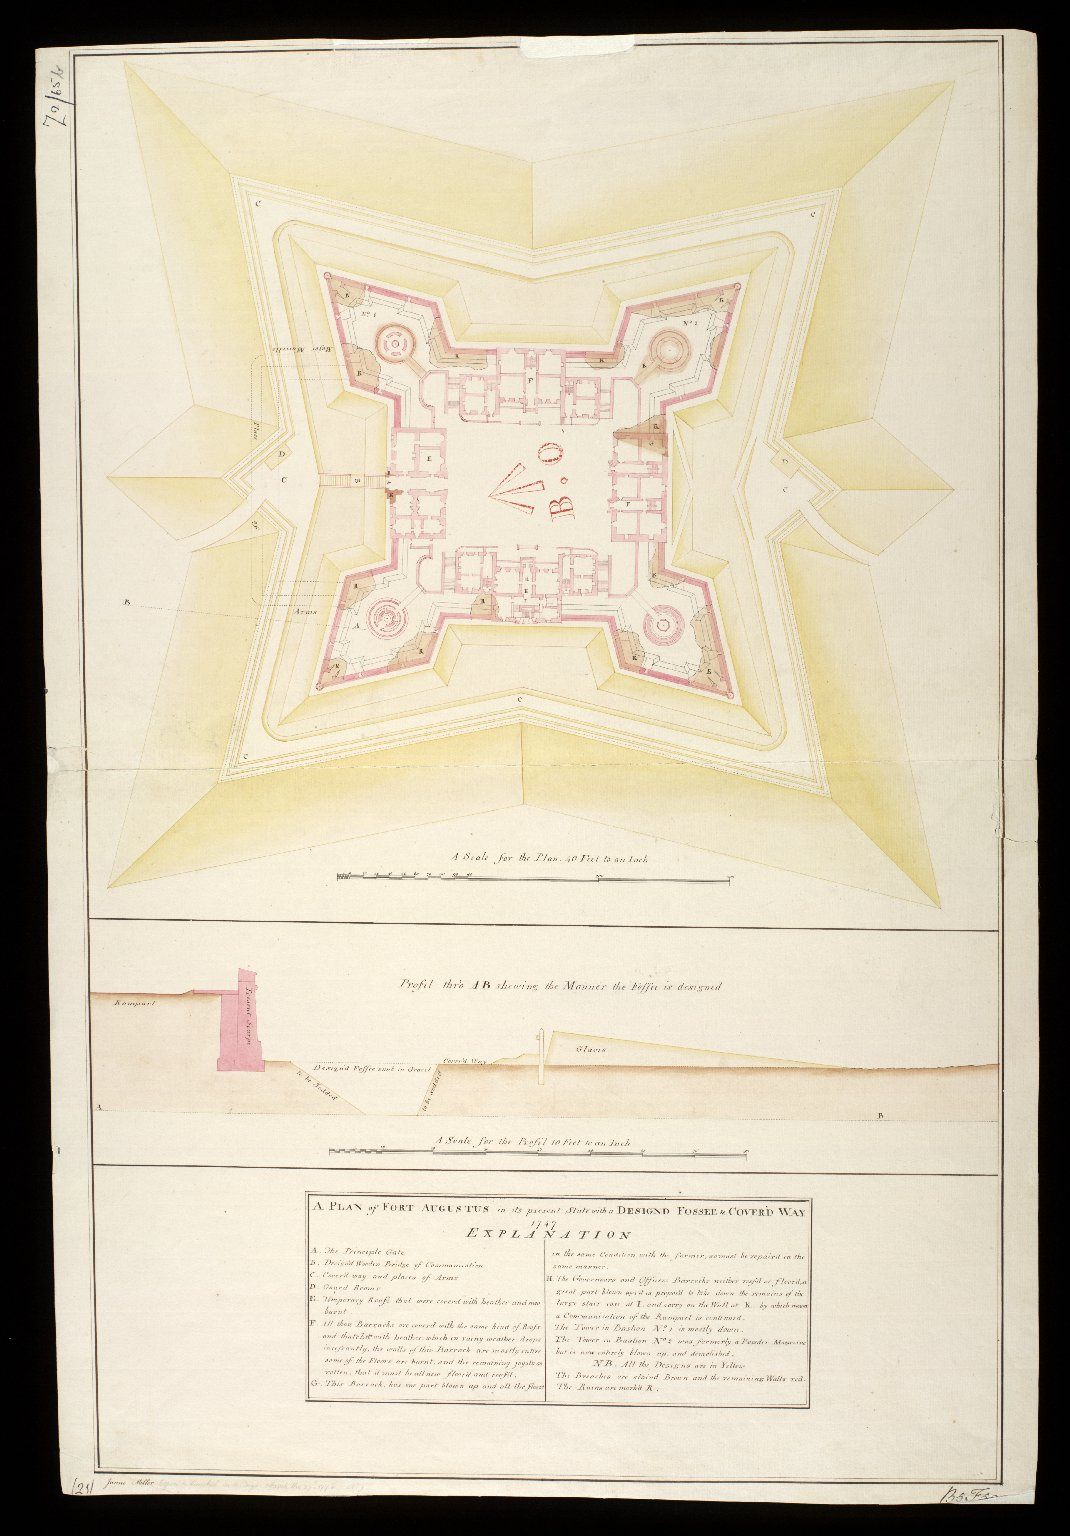 A Plan of Fort Augustus in its present state with a designd fossee & cover'd way 1747 [copy] [1 of 1]